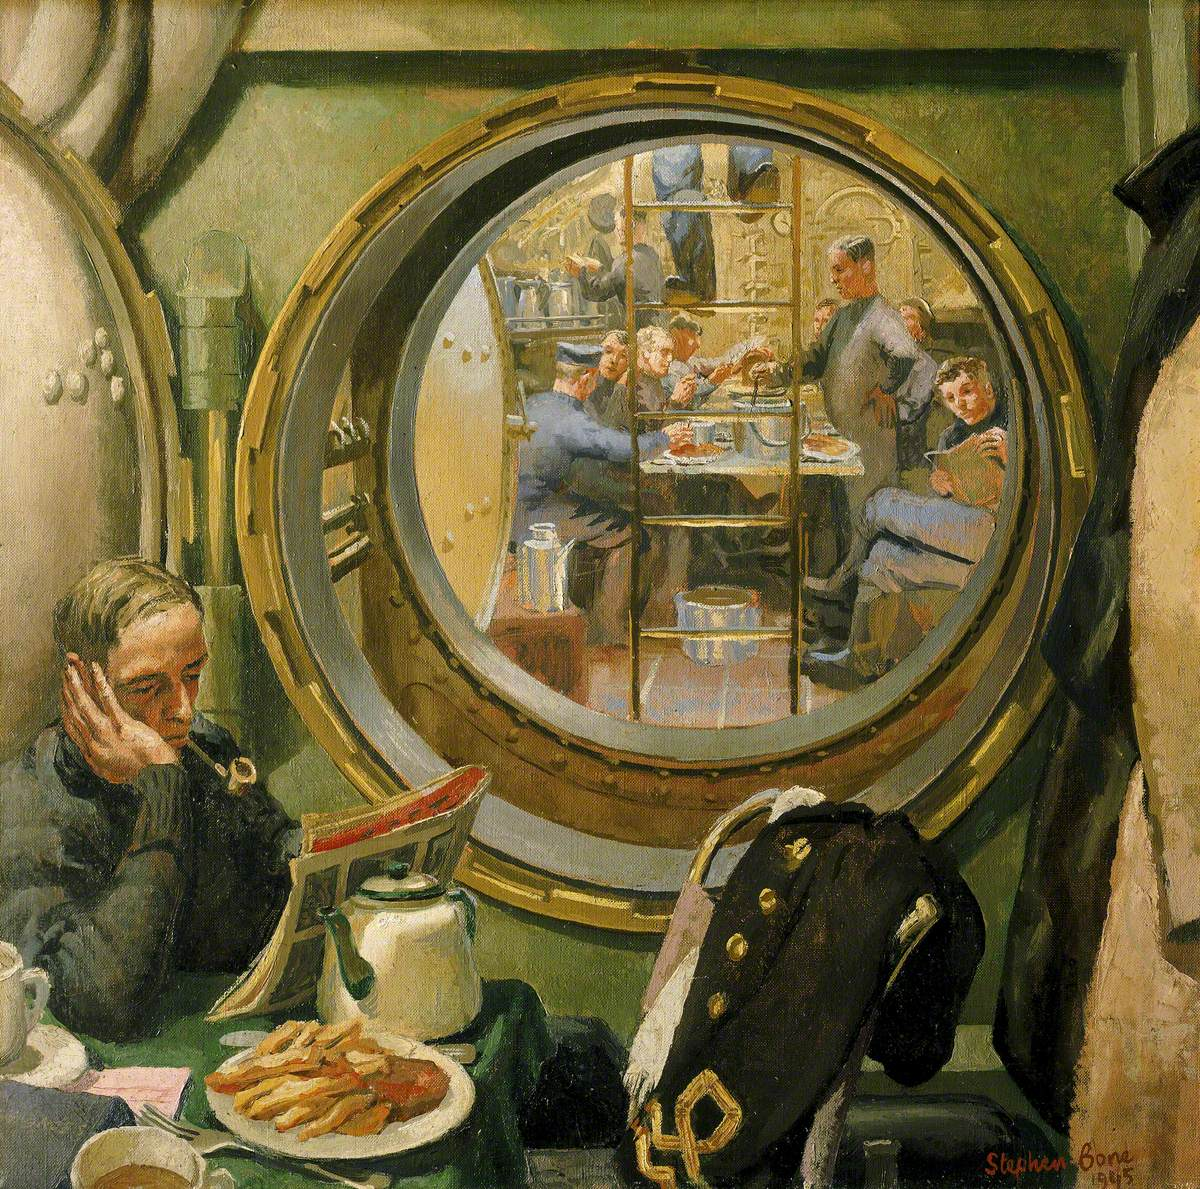 S-Class Submarine:The Wardroom and Forward Mess Deck Seen through the Davis Escape Chamber